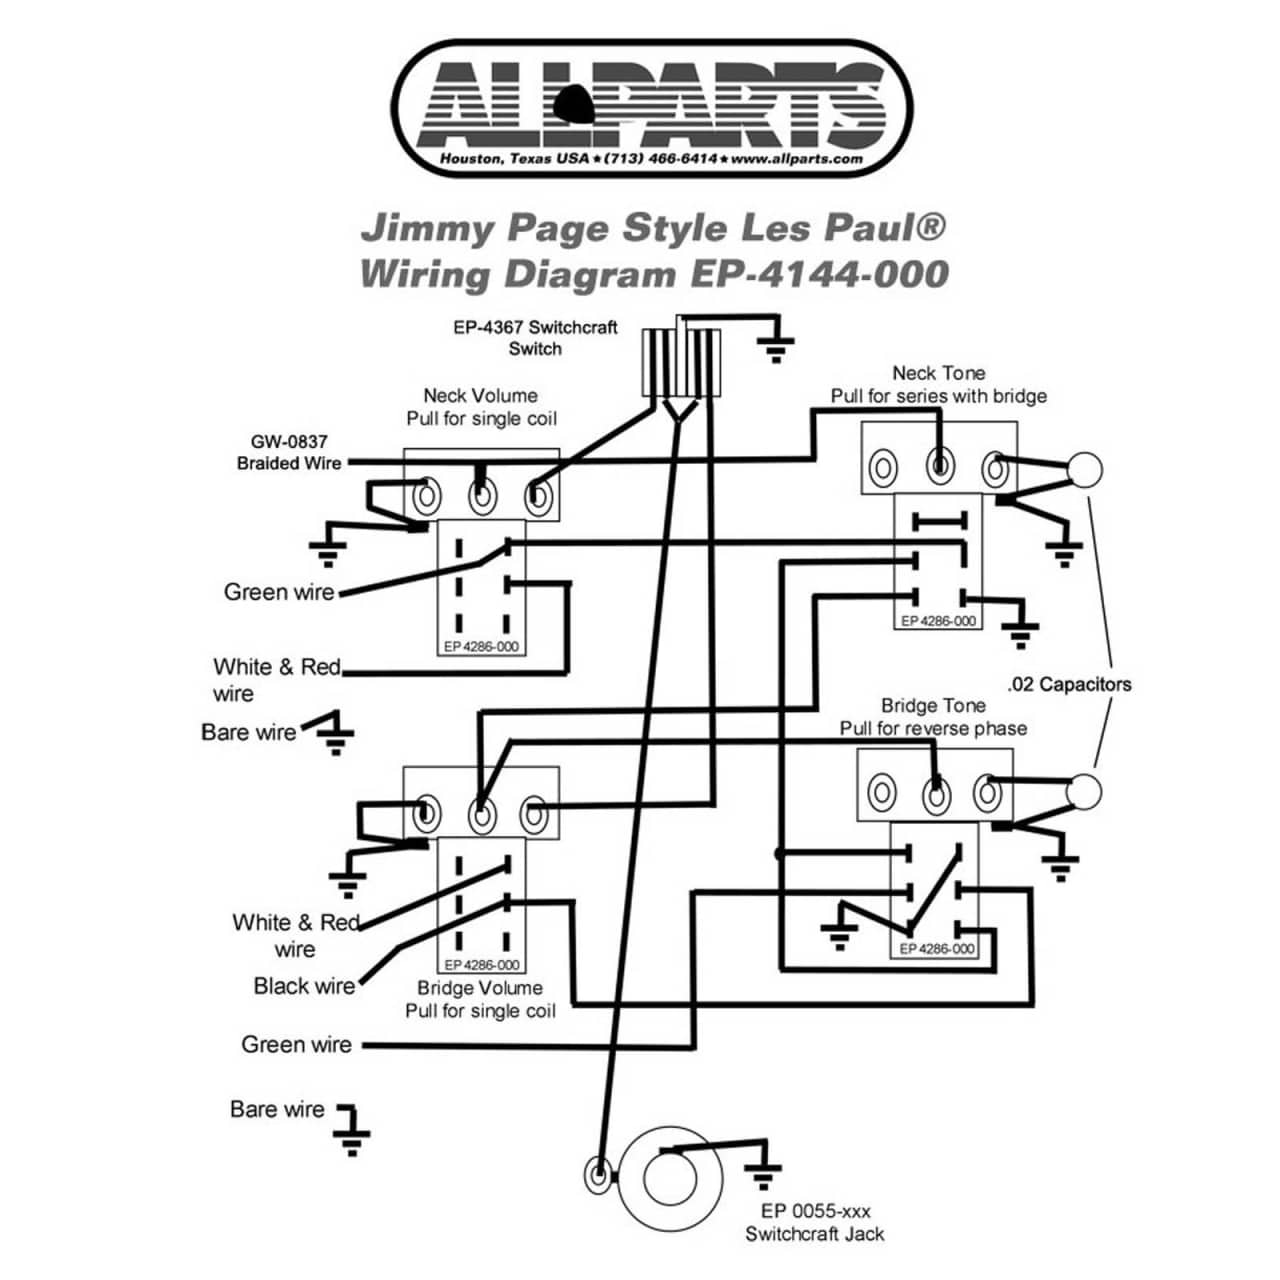 Gibson Les Paul Drawing At Free For Personal Use 50s Wiring Diagram 1280x1280 Kit Jimmy Page Complete With Reverb